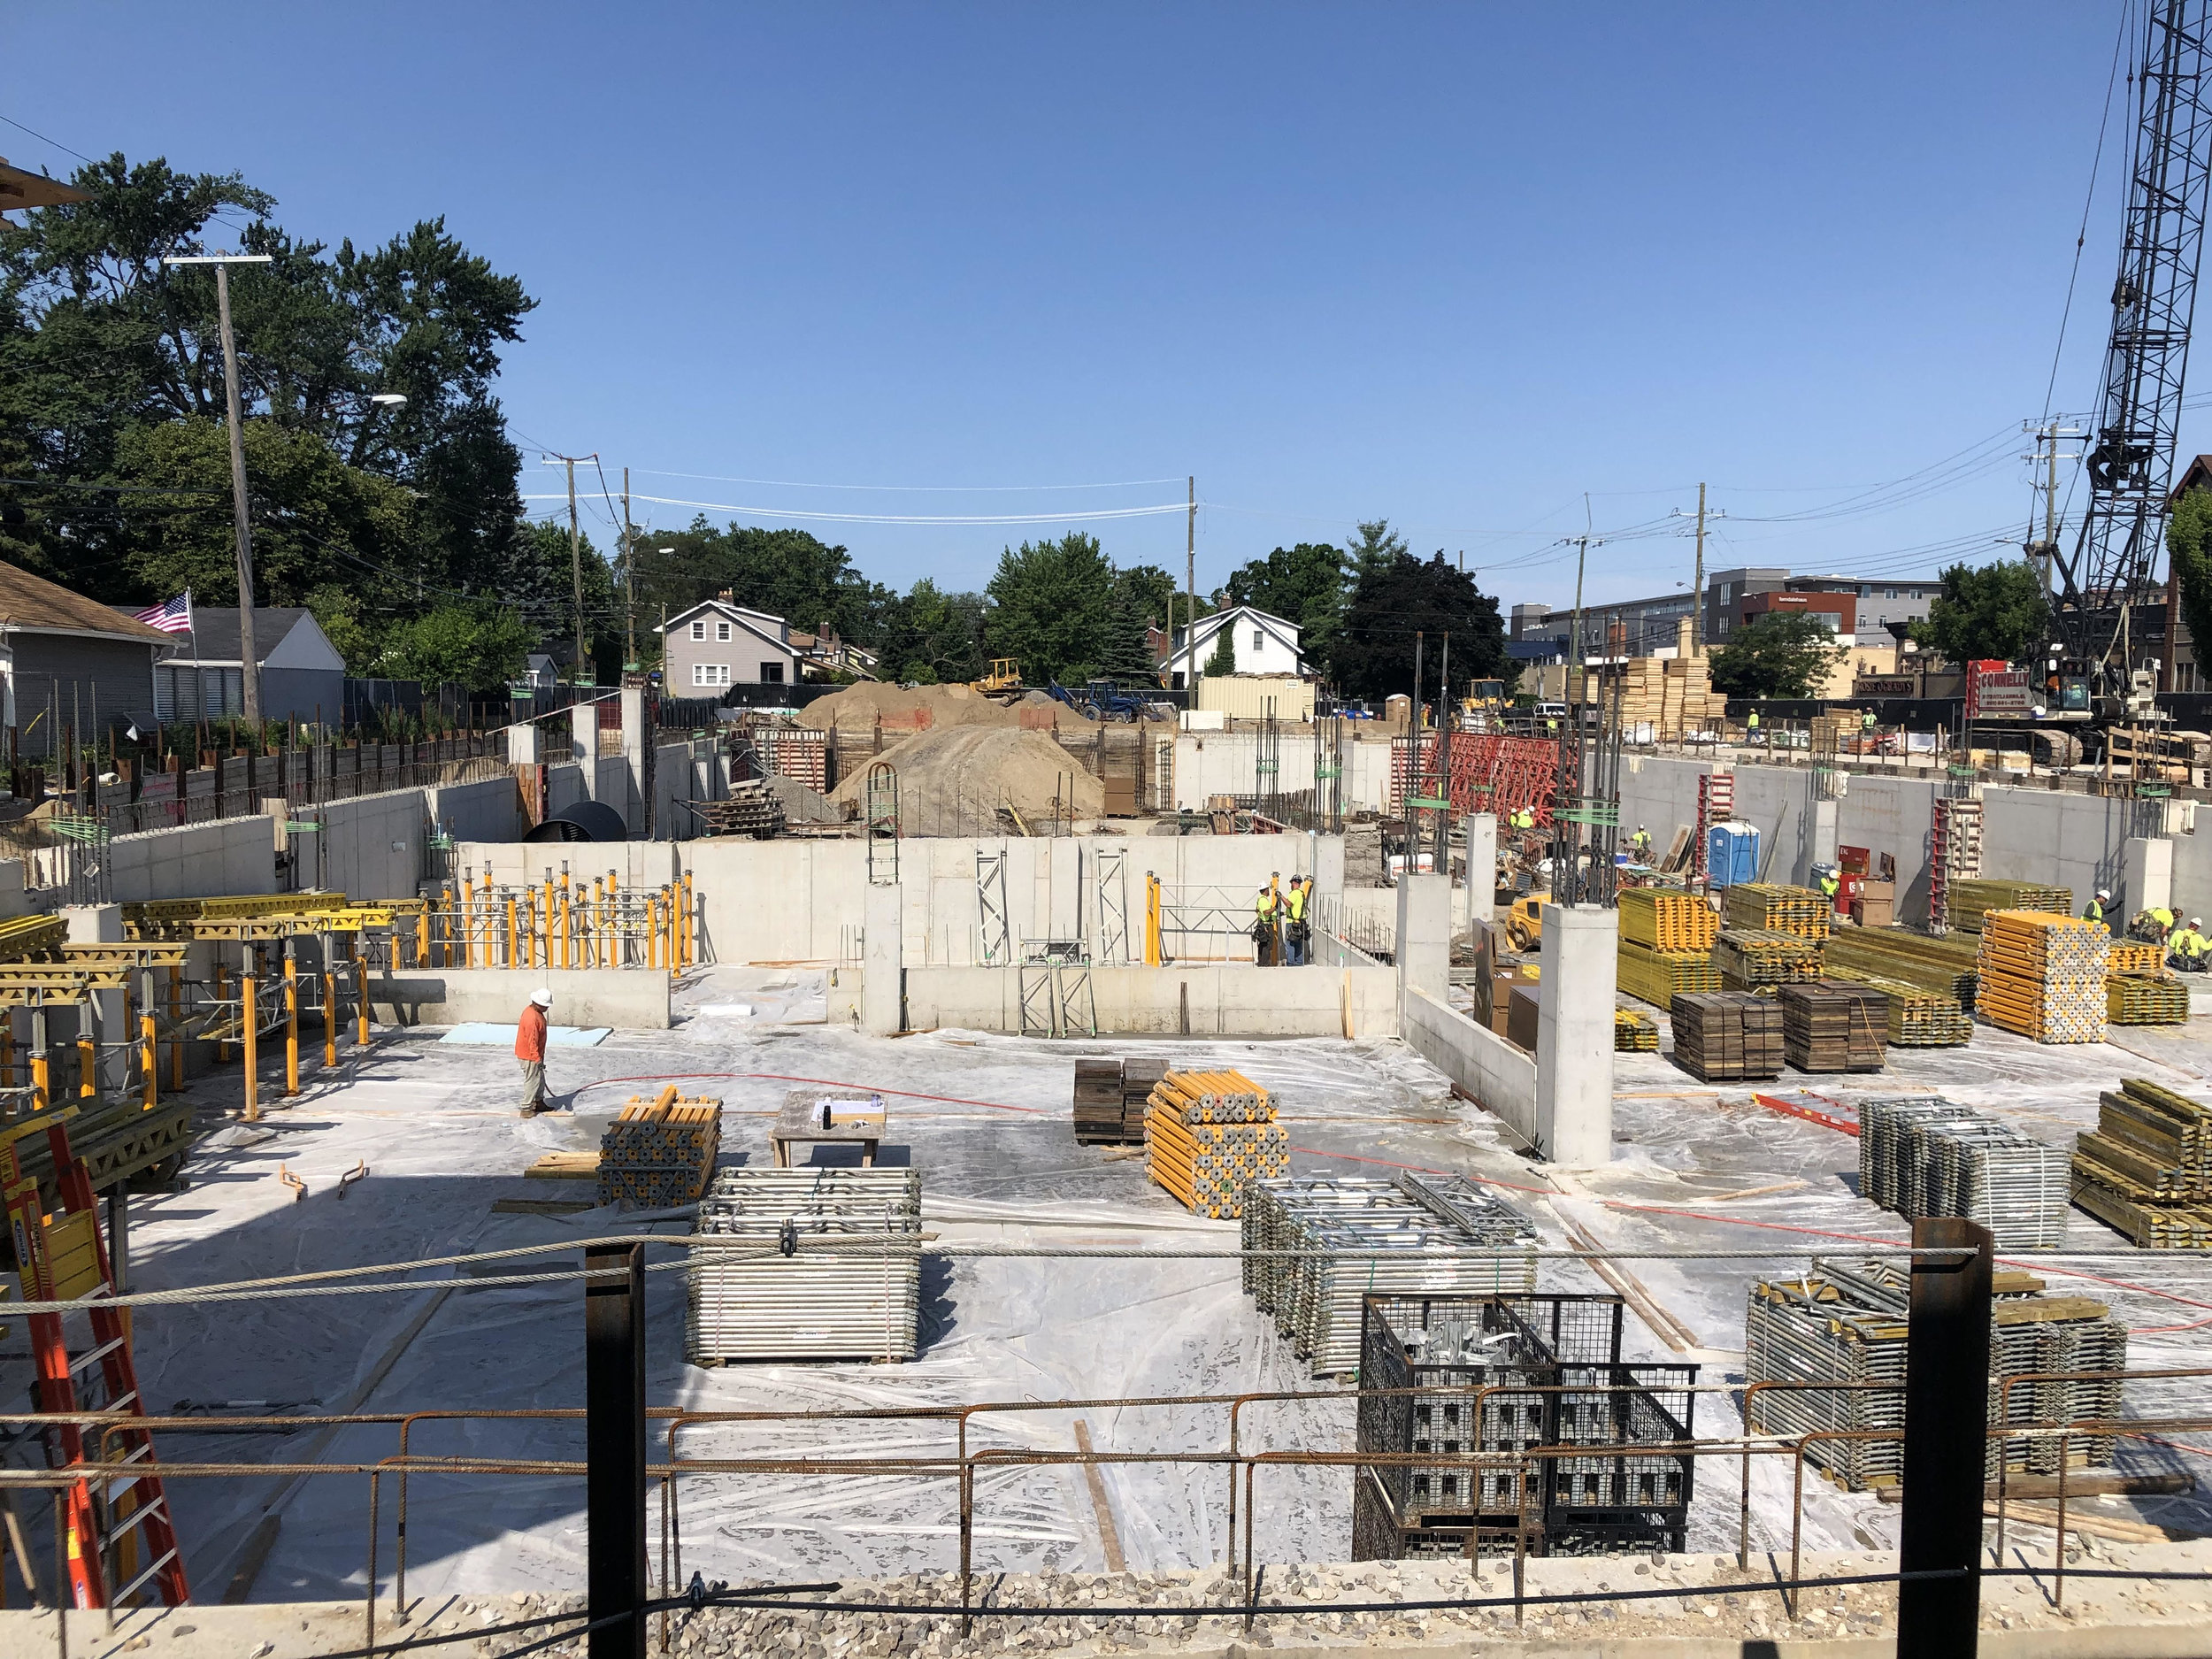 Basement floor is done and foundations and react pillars are being formed